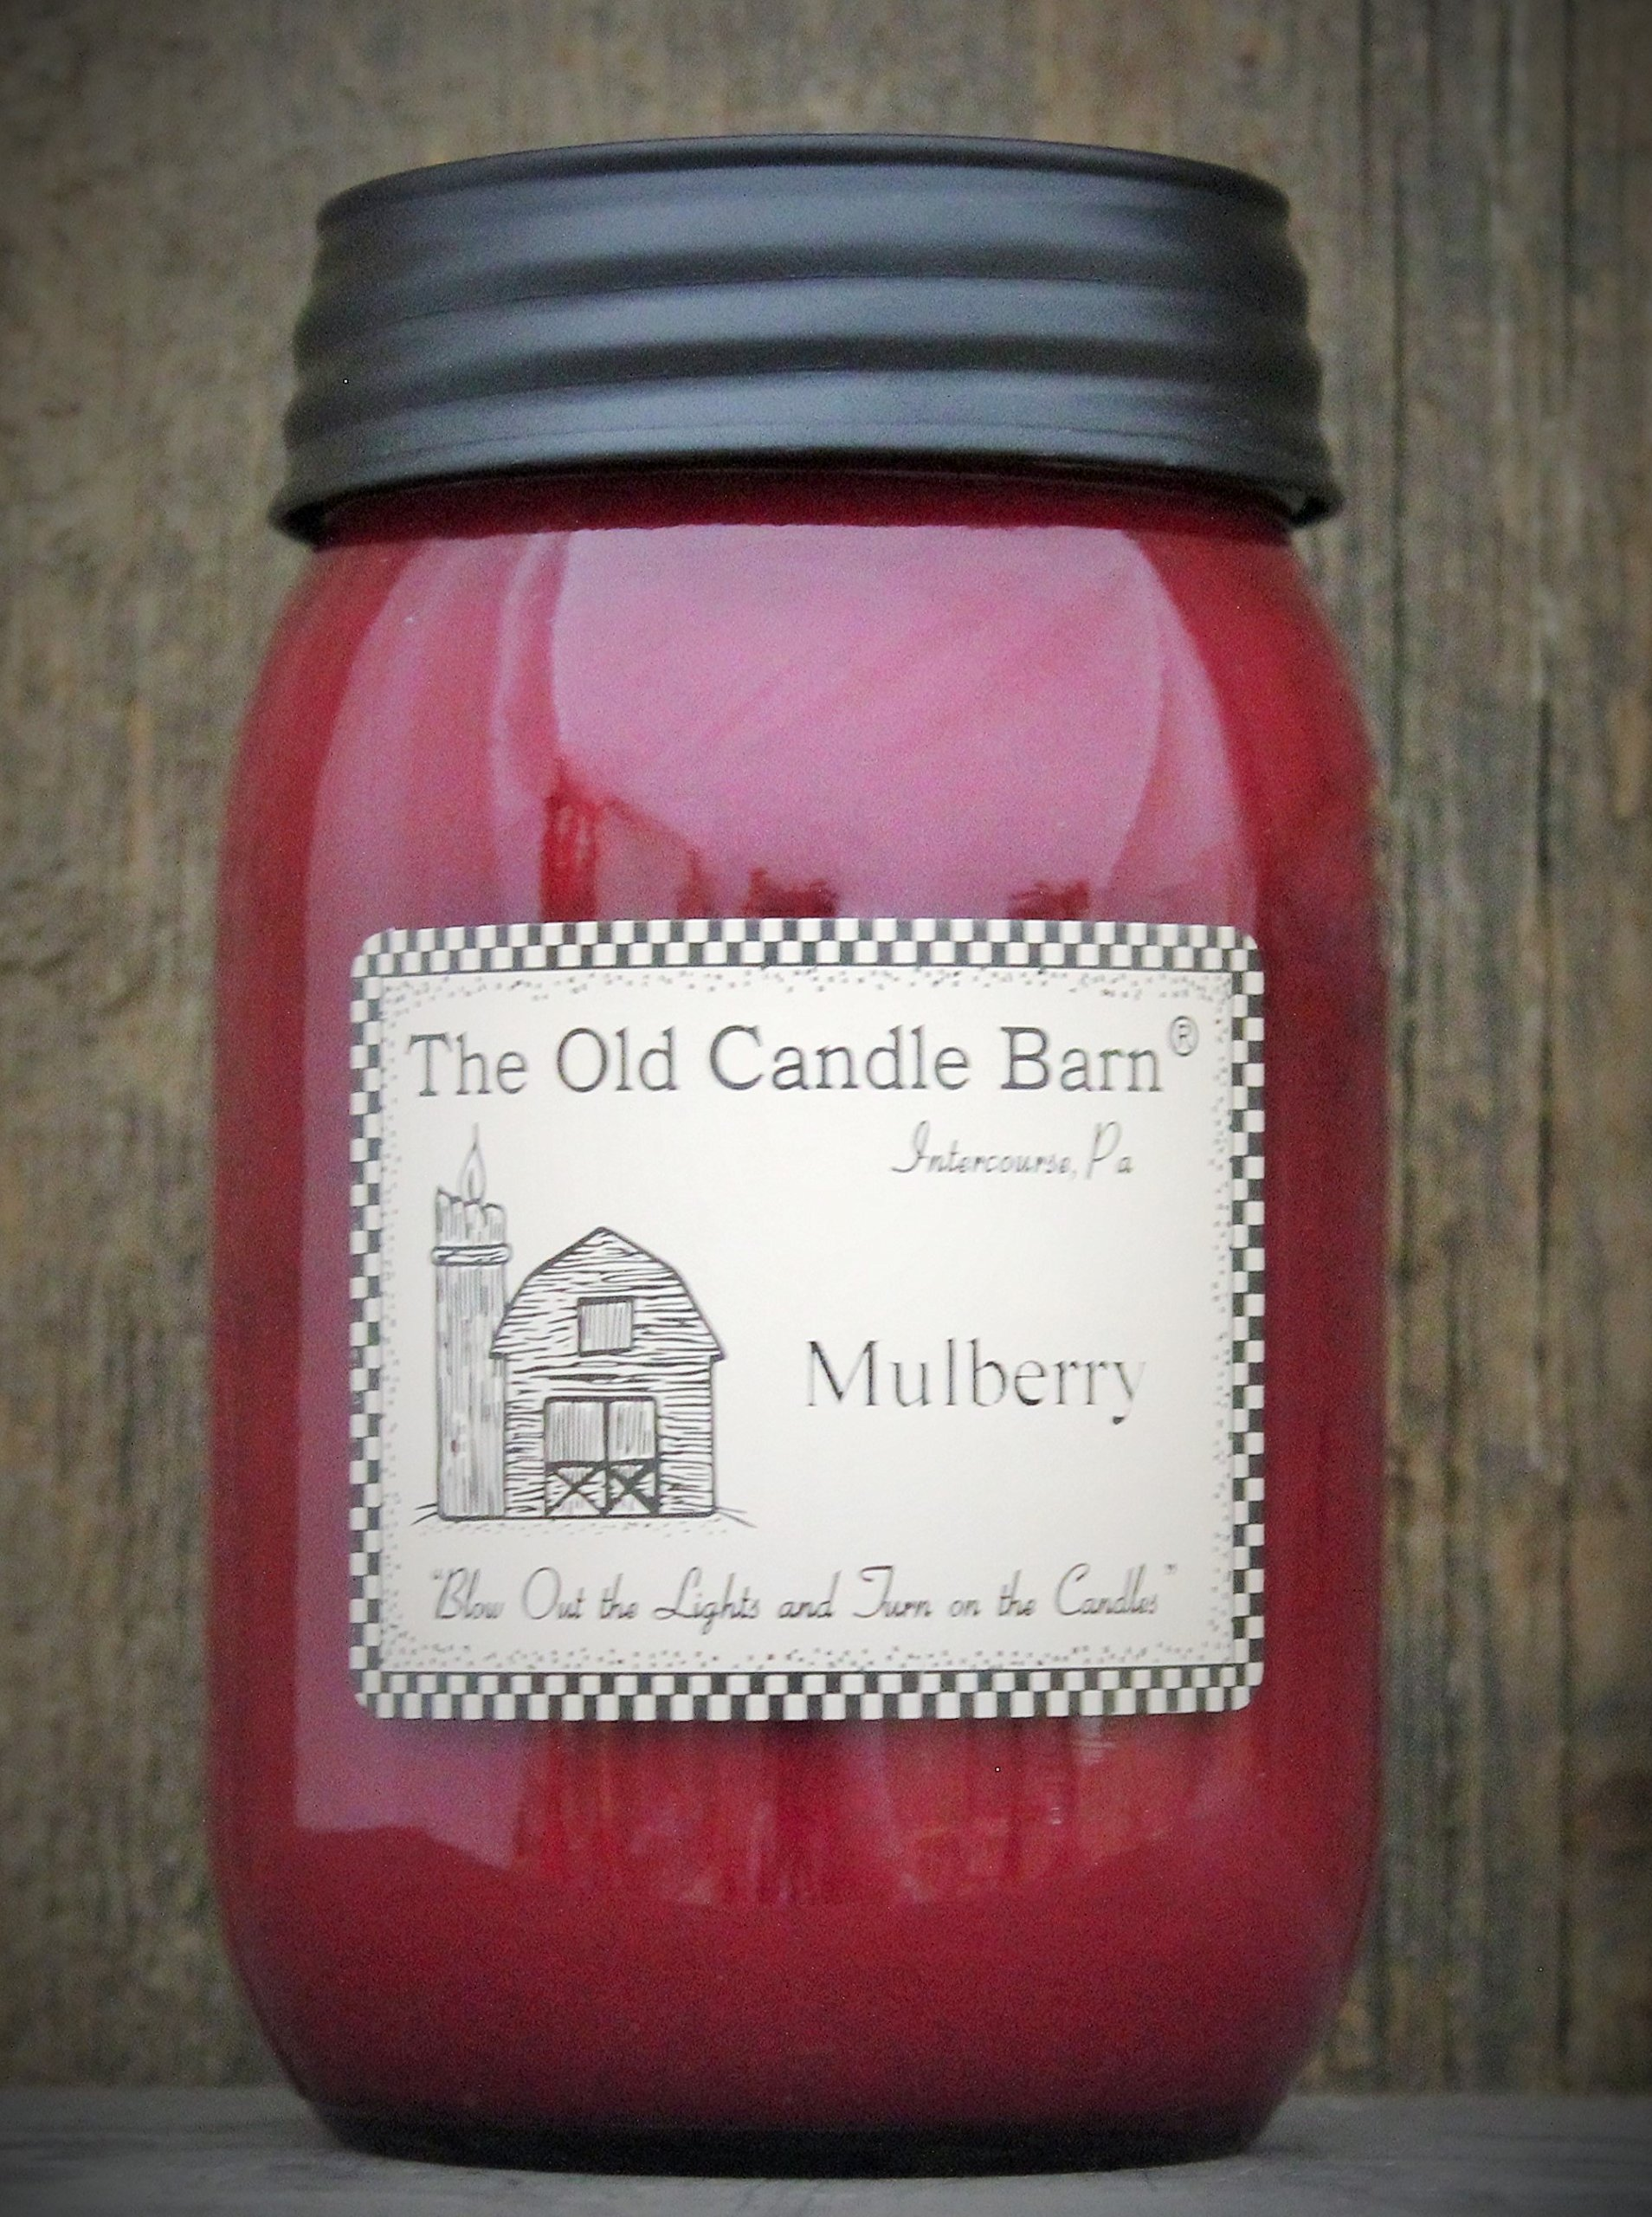 Amazon Com Mulberry 16 Oz Jar Candle Made In The Usa Blow Out The Light And Turn On The Candles Home Kitchen